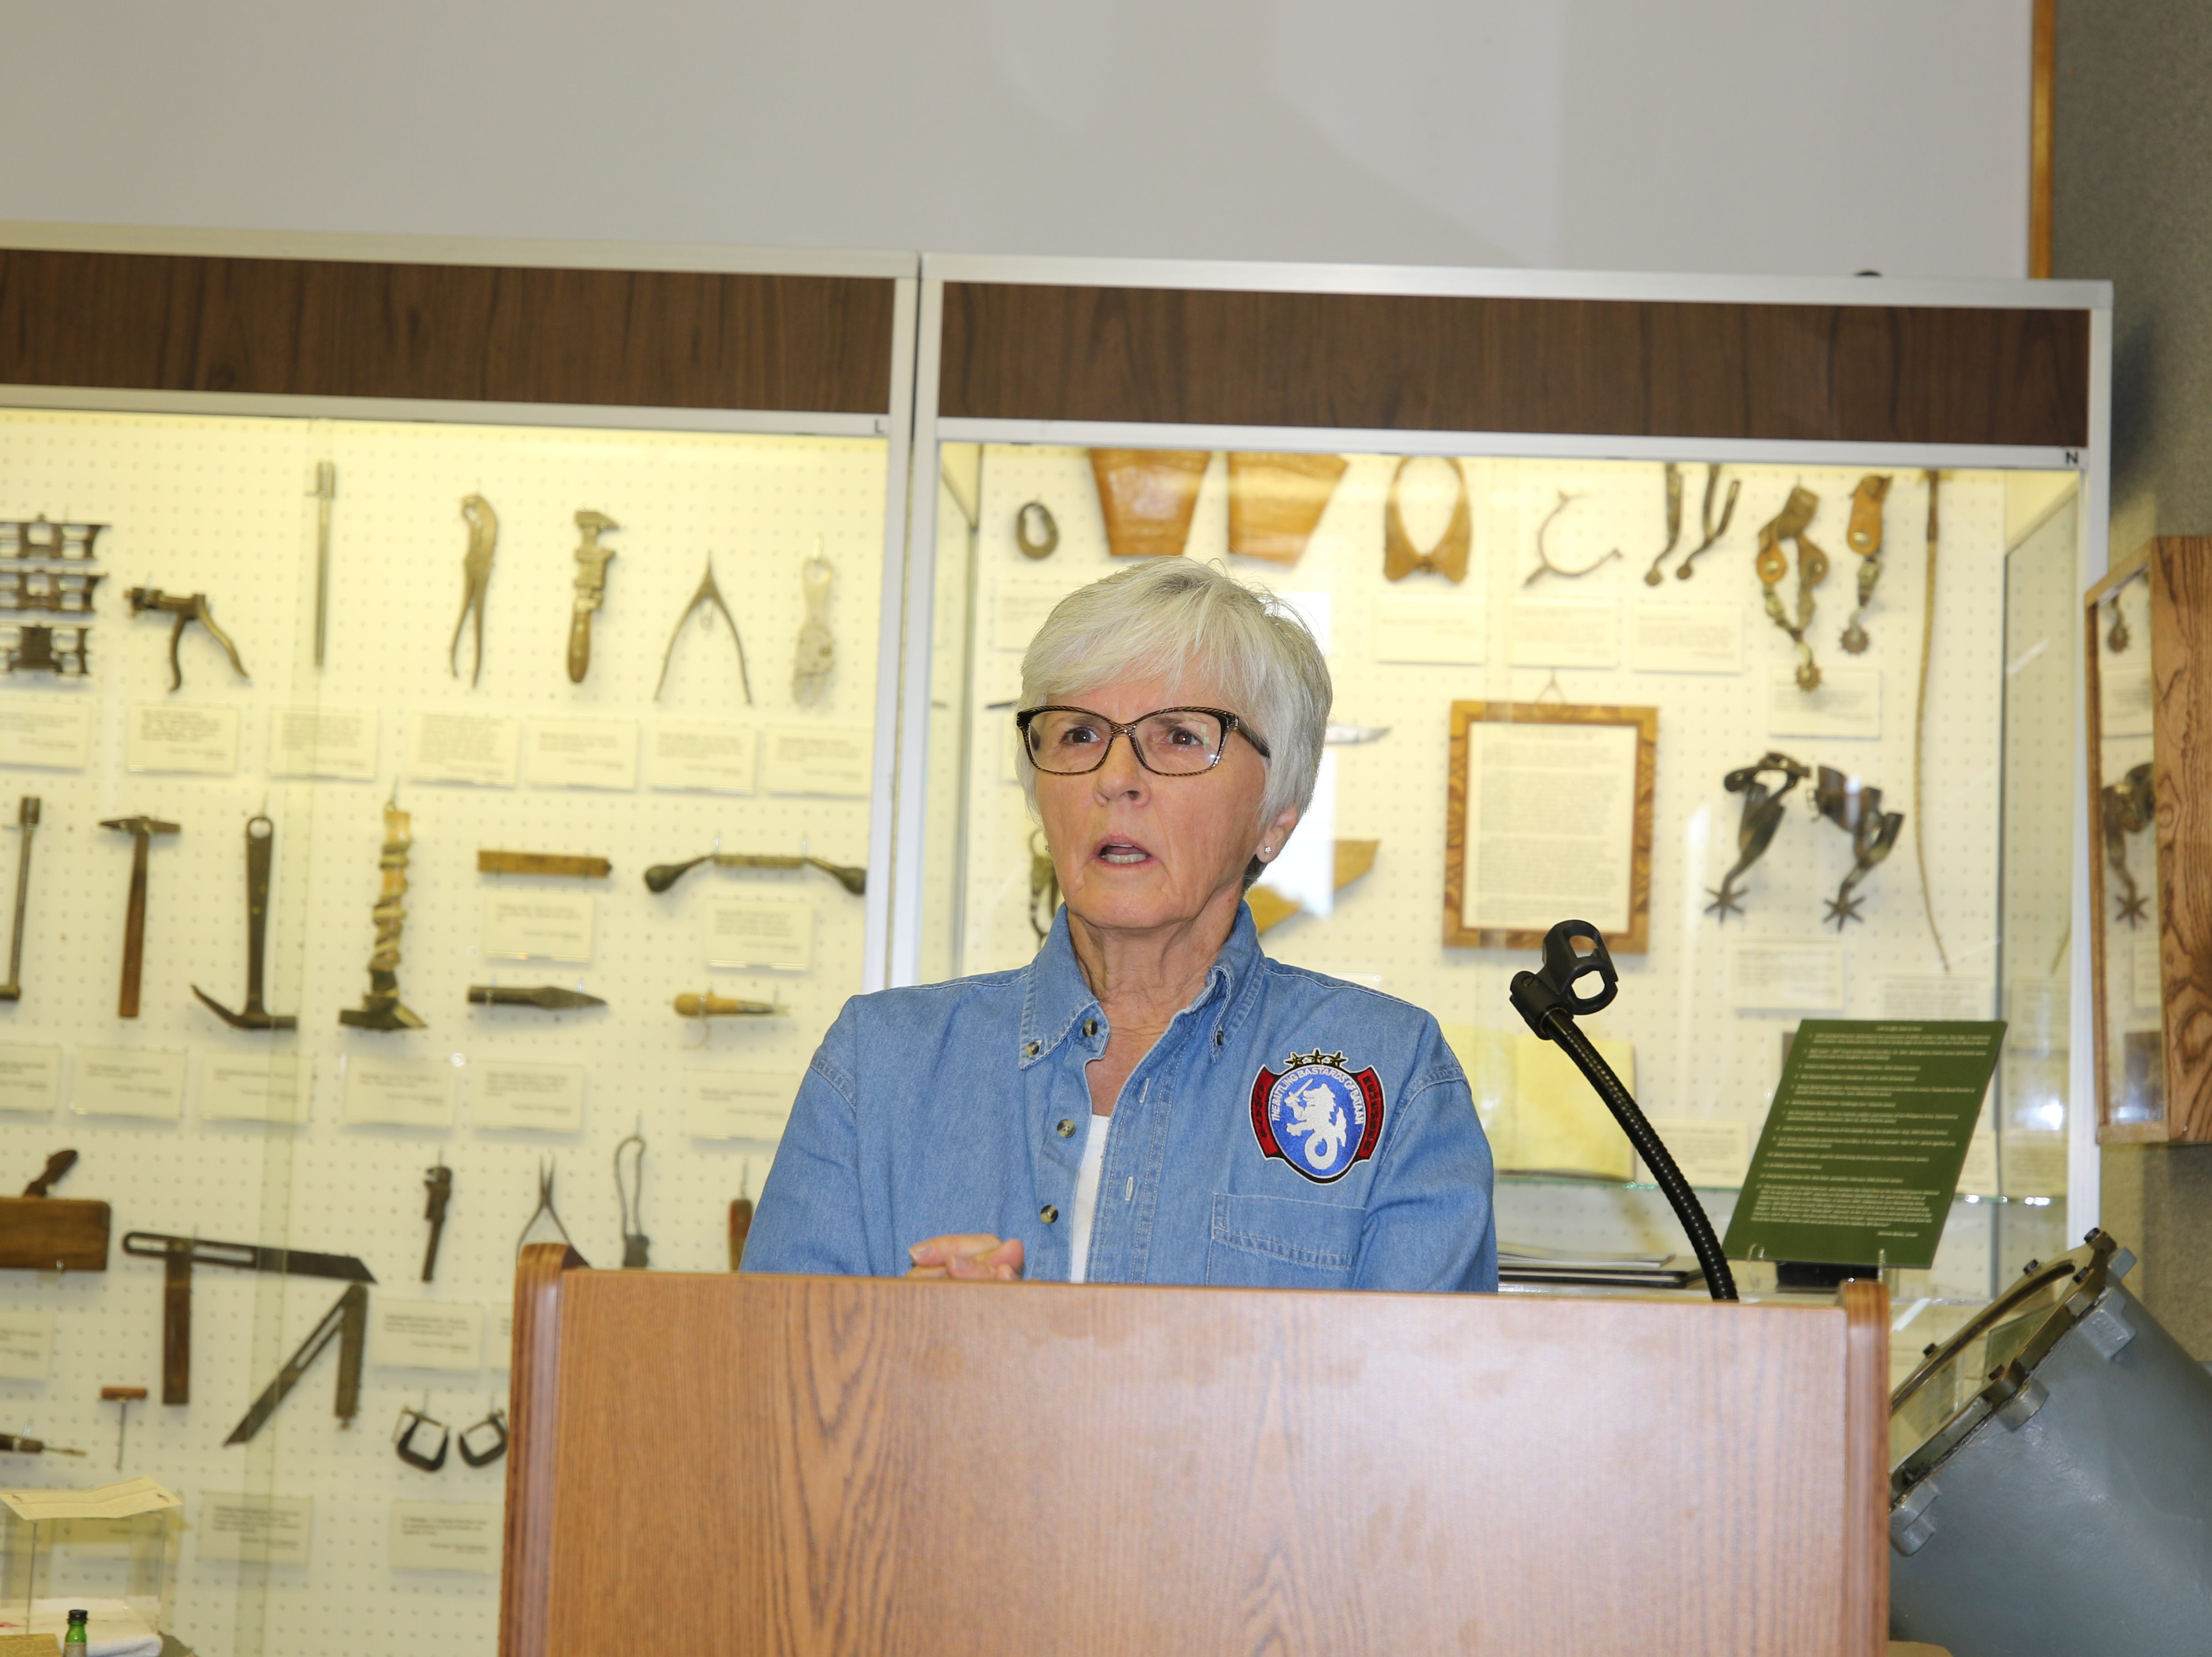 Joanna Sieberg speaks during a Congressional Gold Medal dedication ceremony April 9 at the Carlsbad Museum and Art Center.  Charlie James, Sieberg's late father, was a survivor of World War II's Bataan Death March.